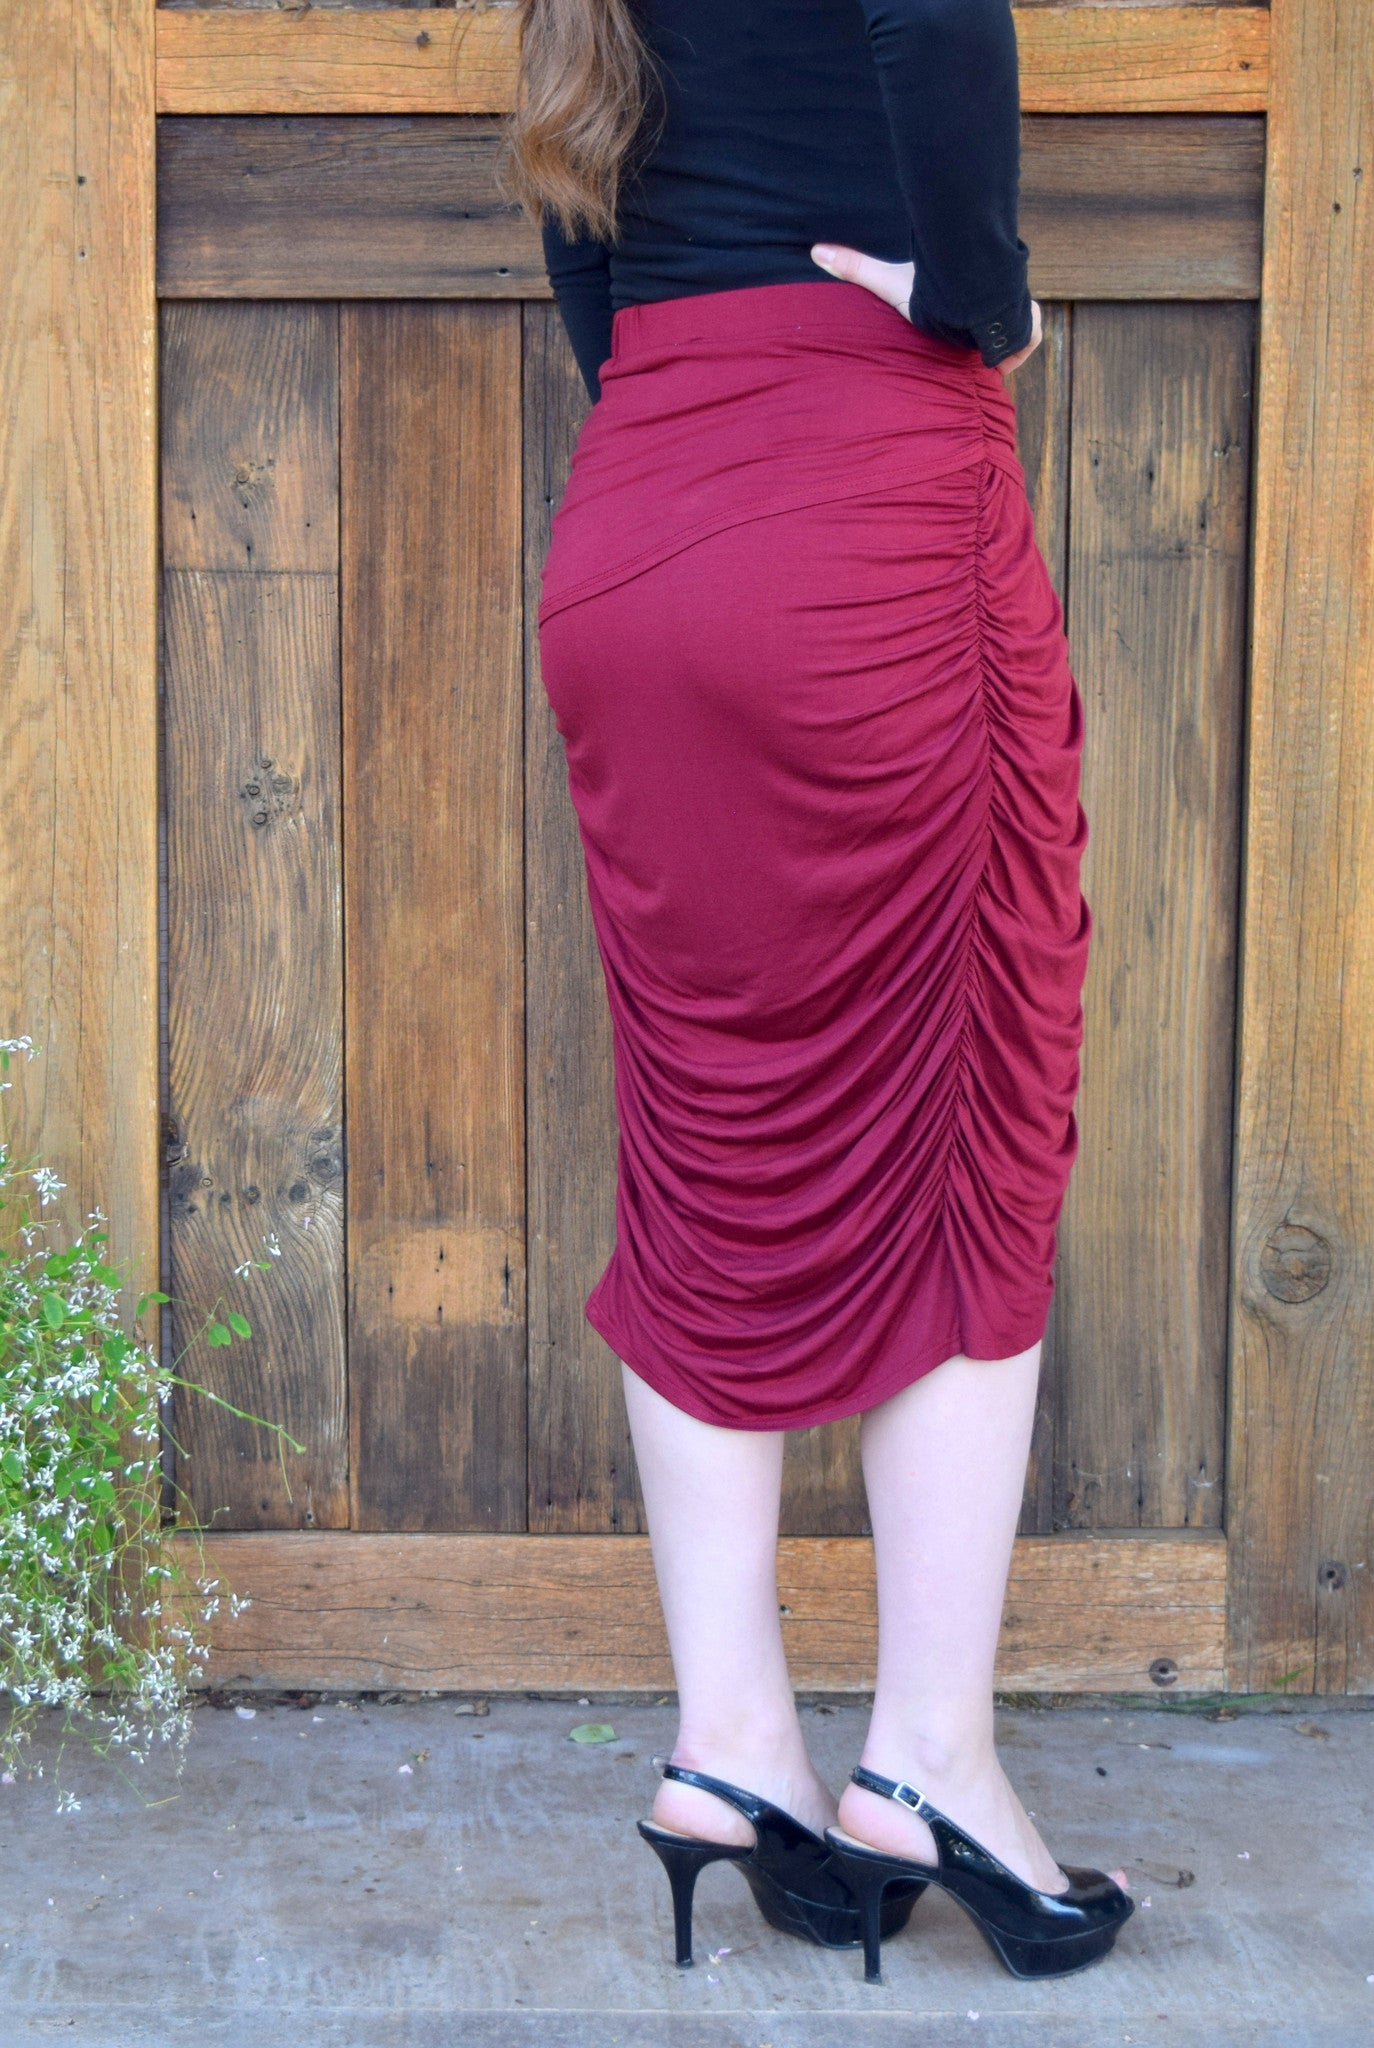 Ruched Midi Skirt - Burgundy FINAL SALE - Willow Blaire - 5